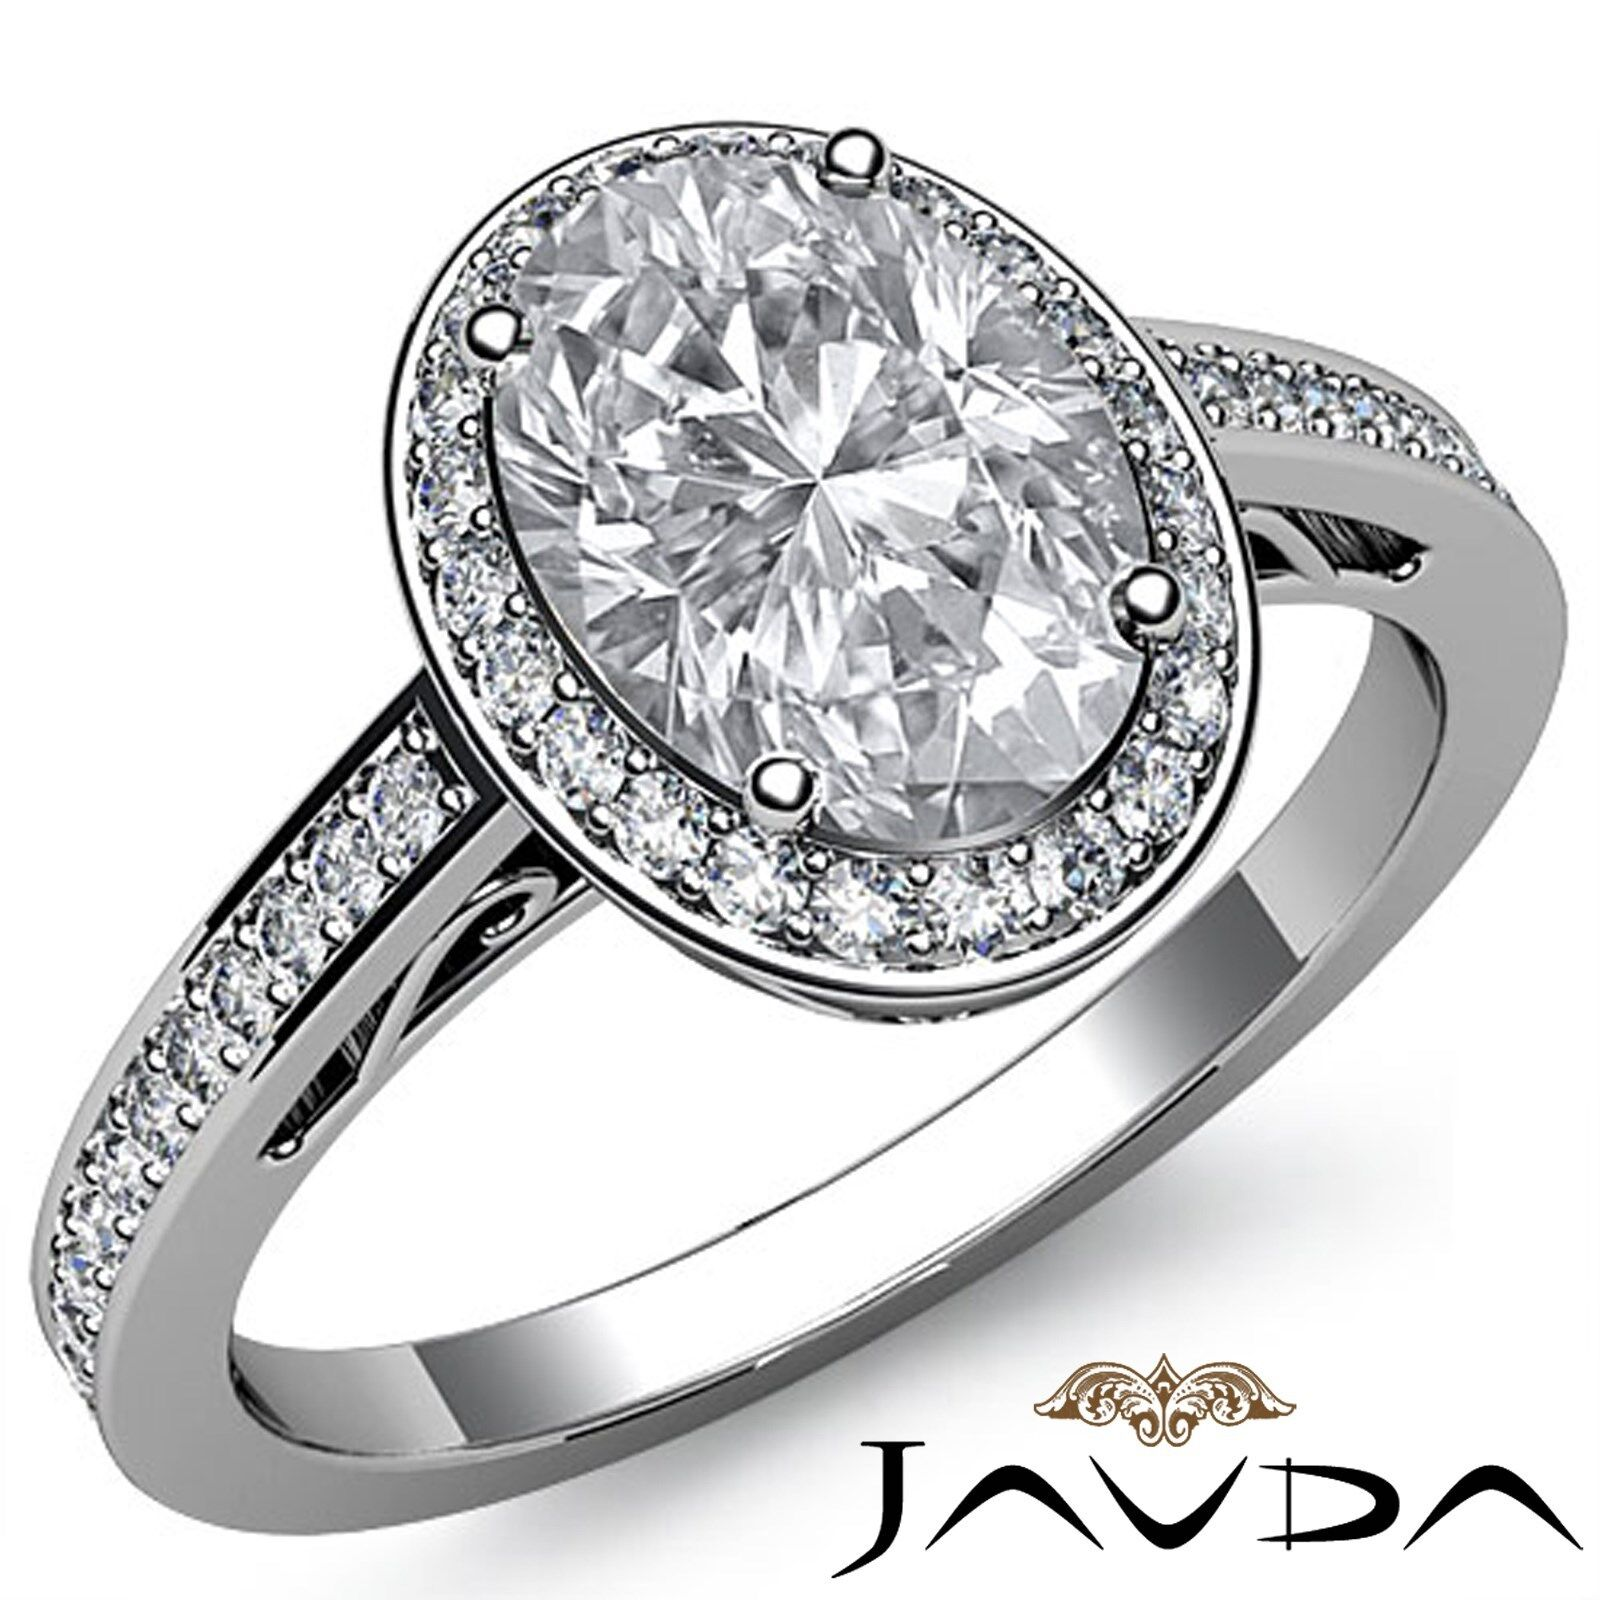 Halo Filigree Shank Micro Pave Oval Diamond Engagement Ring GIA I Color VS2 2Ct